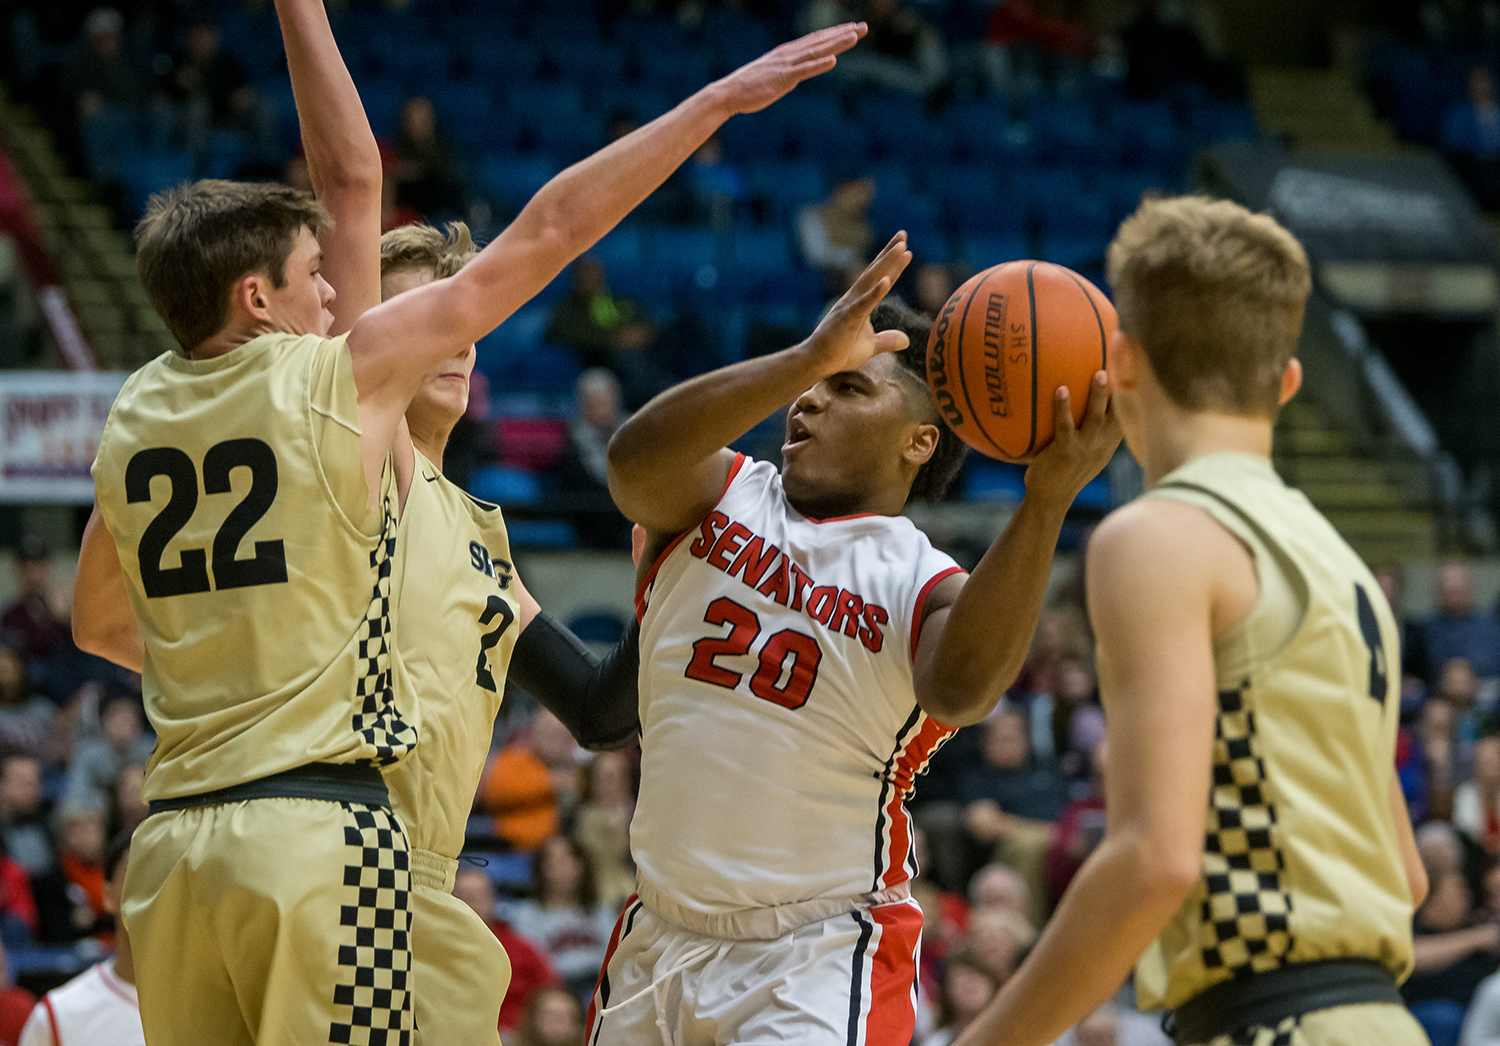 Springfield's Caleb Small (20) drives into the basket against a trio Sacred Heart-Griffin defenders in the third quarter on opening night of the Boys City Tournament at the Bank of Springfield Center, Wednesday, Jan. 16, 2019, in Springfield, Ill. [Justin L. Fowler/The State Journal-Register]